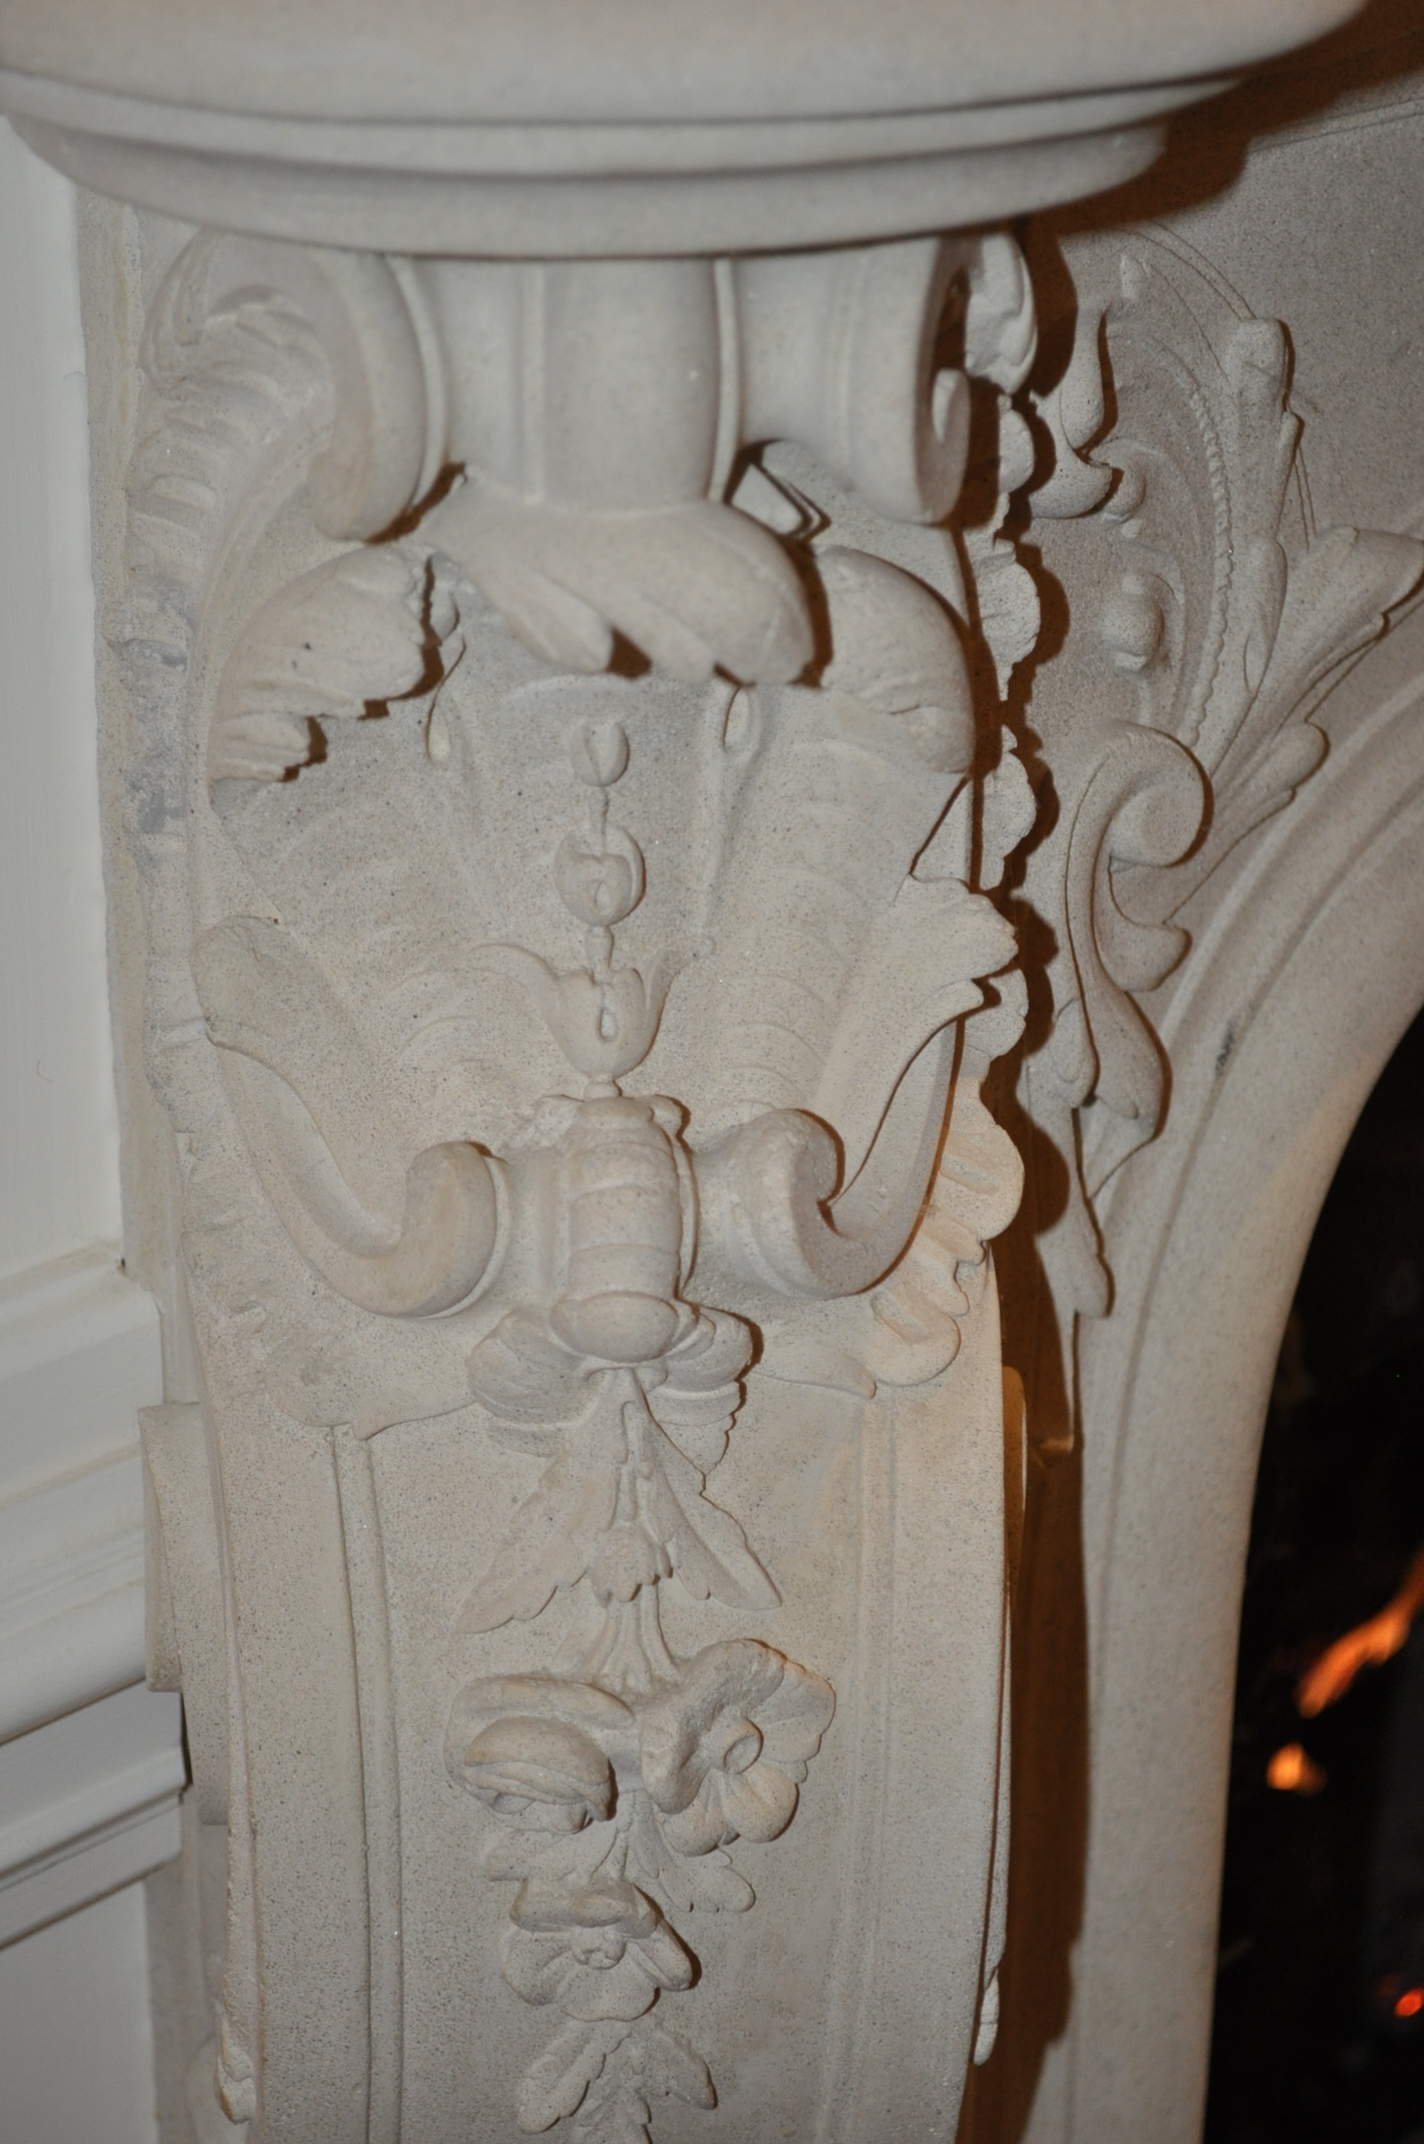 Intricately carved fireplace mantel